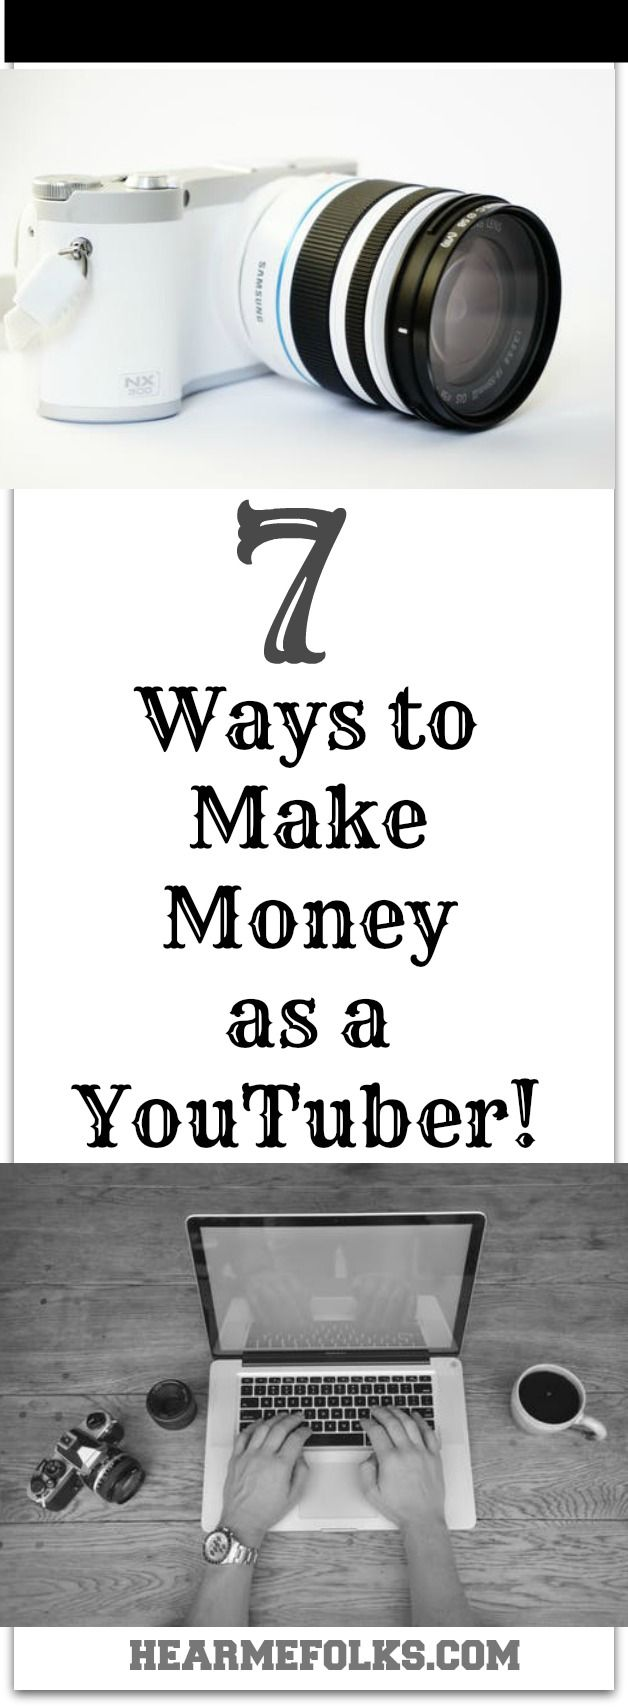 7 Proven Ways You Can Earn Money from YouTube Videos – Hear Me Folks || Work from Home Jobs + Passive Income Side Hustle Ideas | Blogging +YouTube Tips